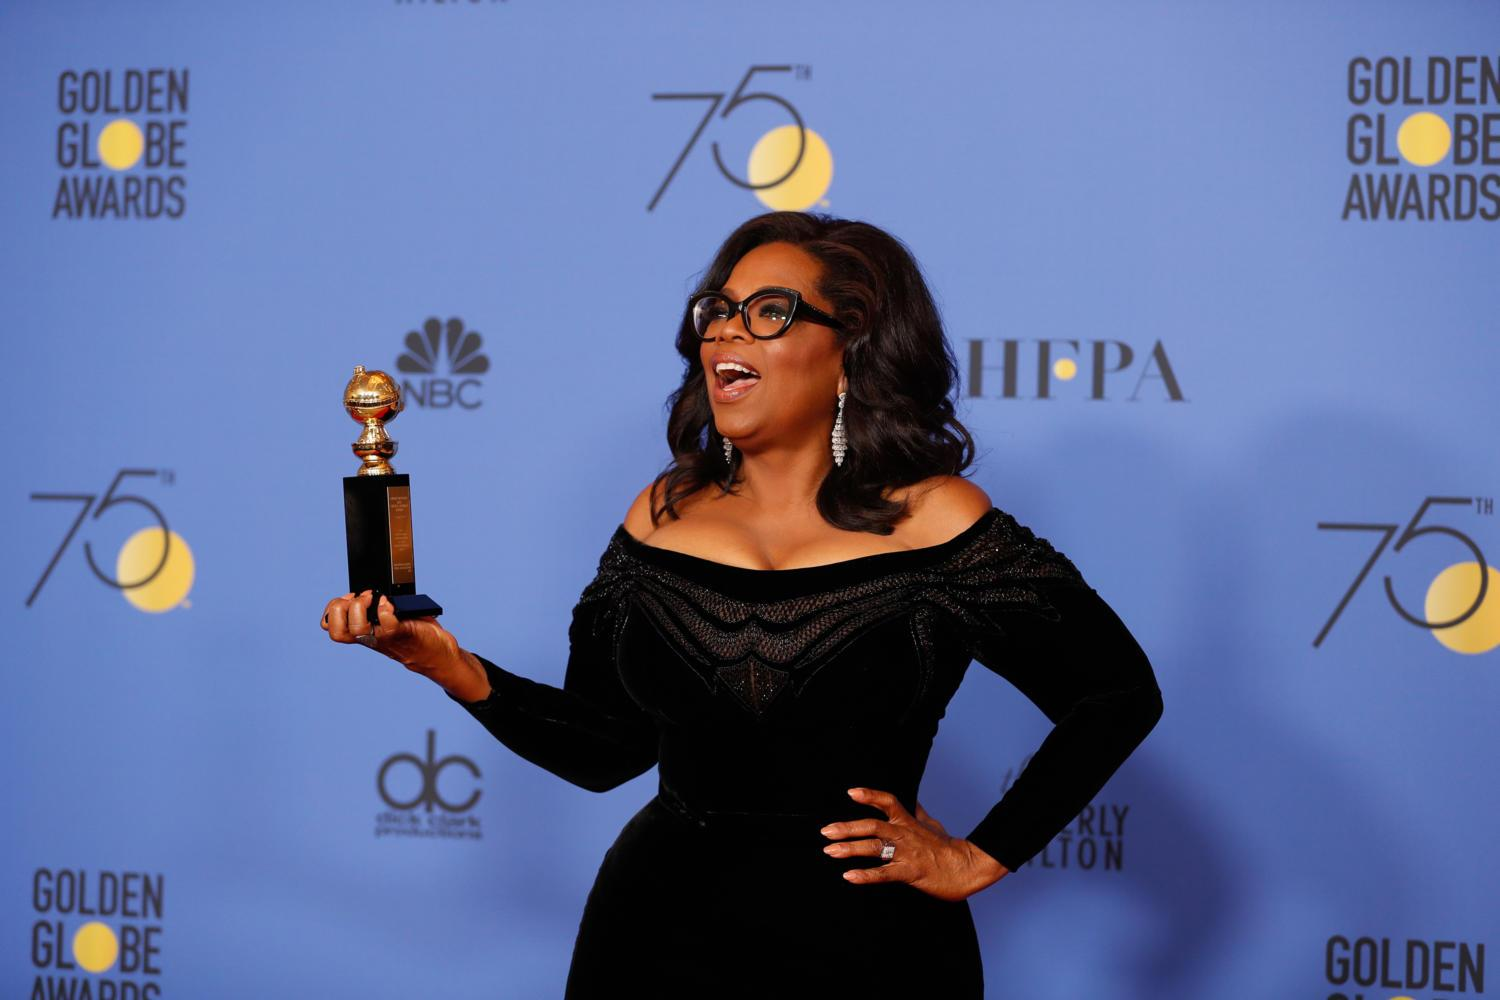 Oprah Winfrey stands backstage at the 75th Annual Golden Globes on Sunday. (Allen J. Schaben/Los Angeles Times/TNS)